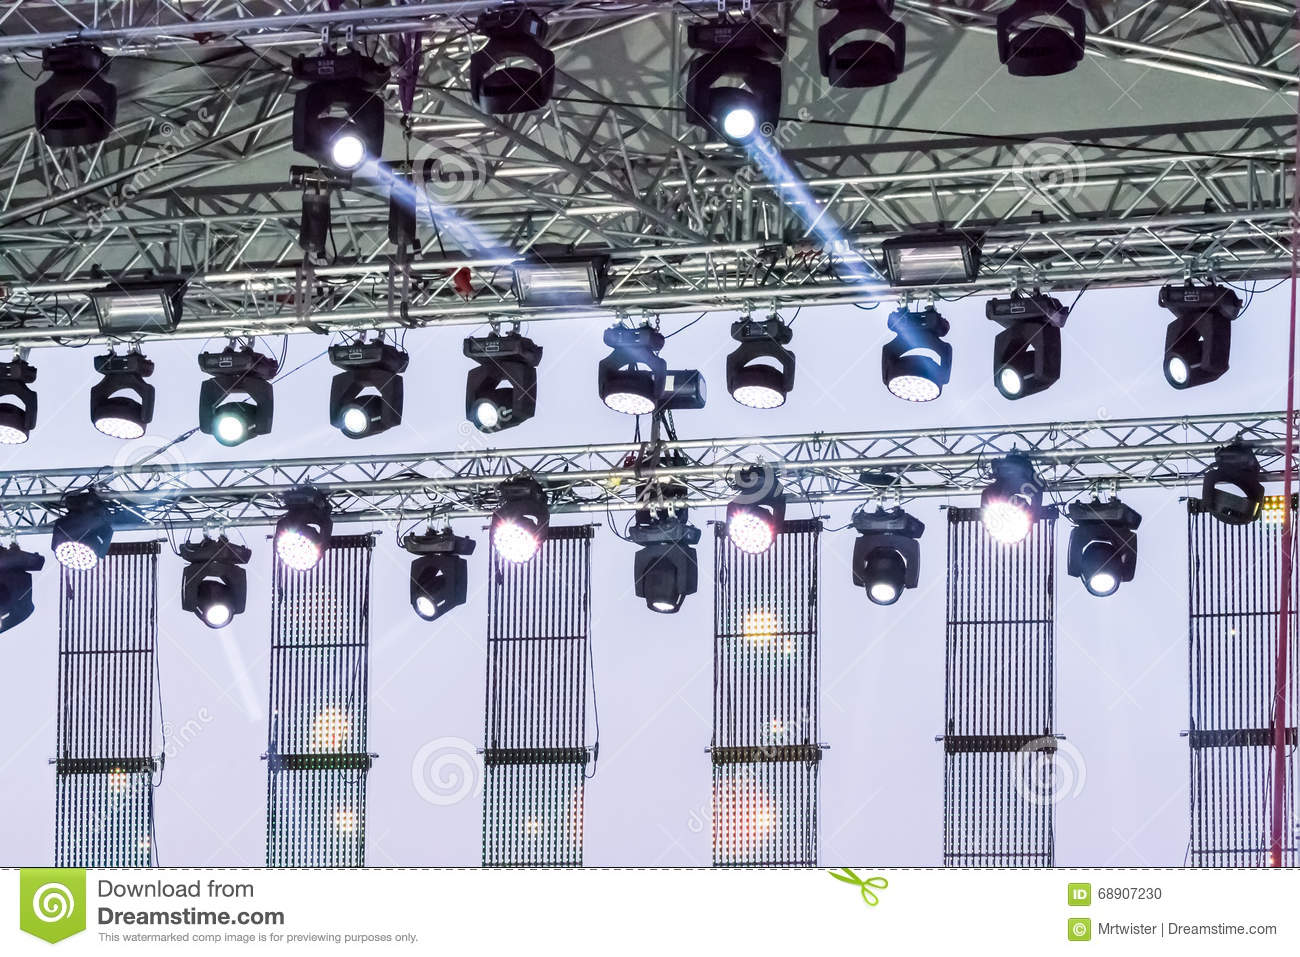 Royalty-Free Stock Photo. Download Stage Lighting Equipment ... & Stage Lighting Equipment Stock Photo - Image: 68907230 azcodes.com